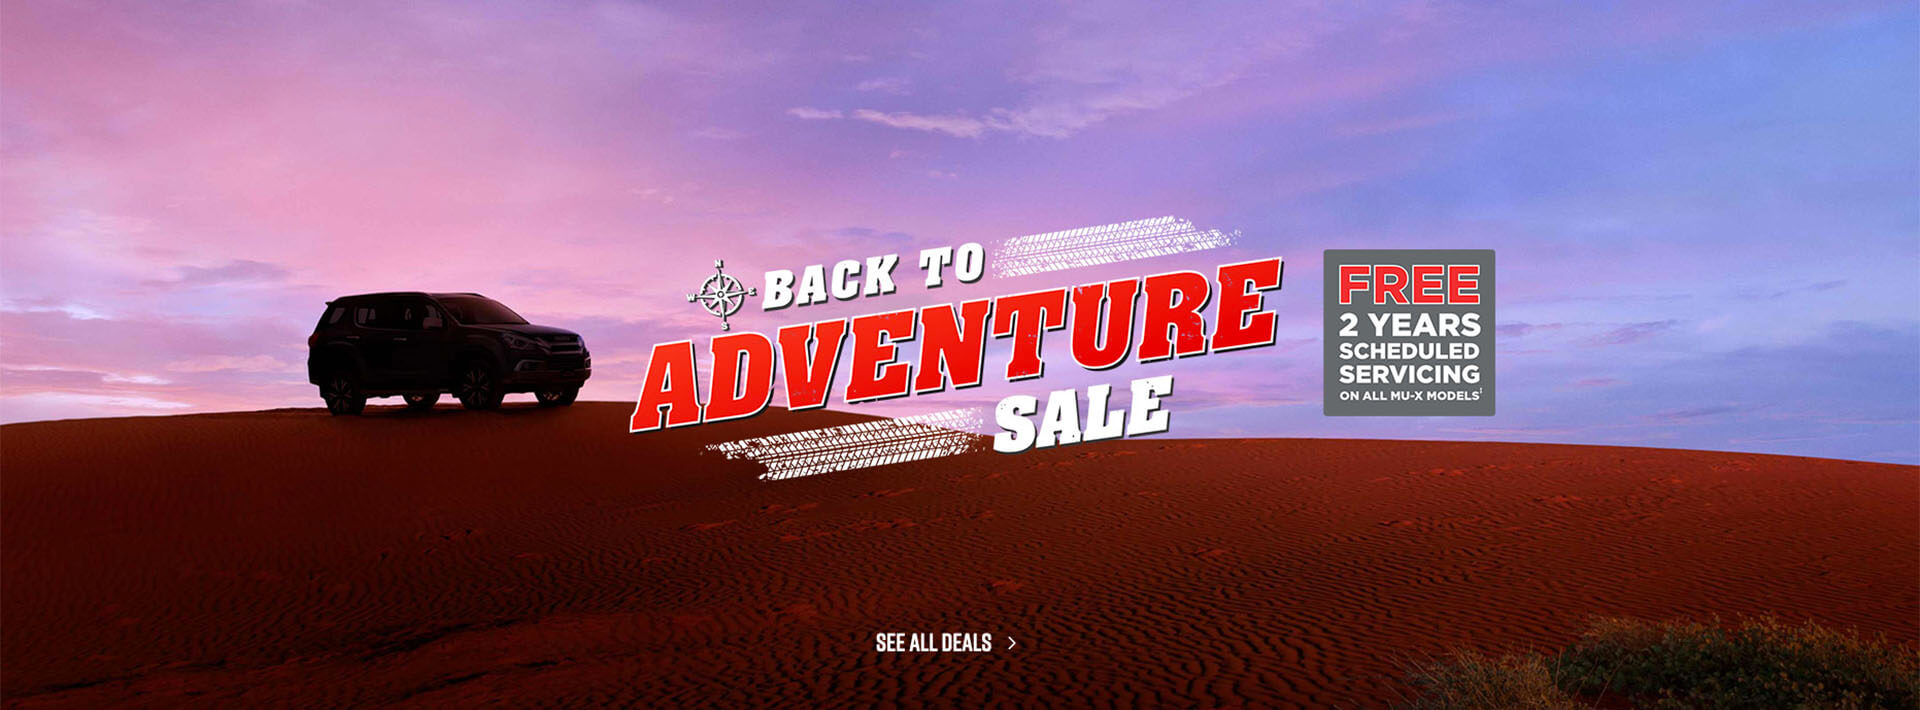 Isuzu UTE Back To Adventure Sale. See all Deals.